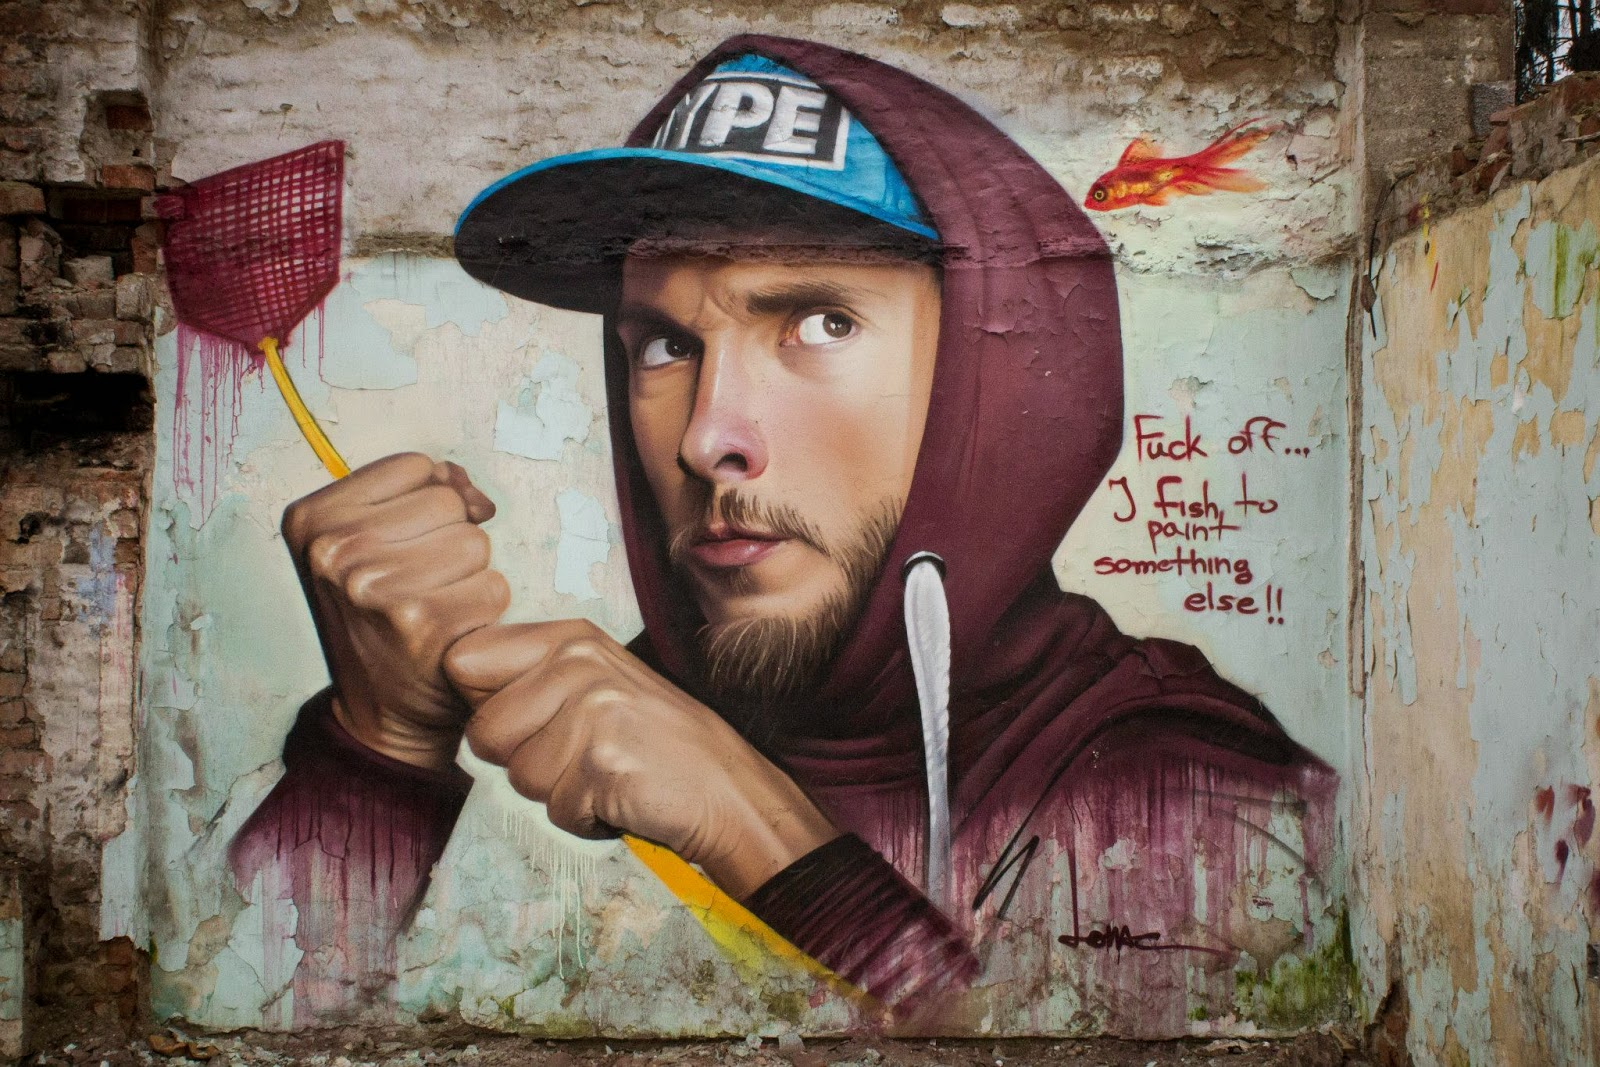 The Croatian photorealistic maestro known Lonac is back in business with a brand new piece which he just completed somewhere on the streets of Zagreb in Croatia.